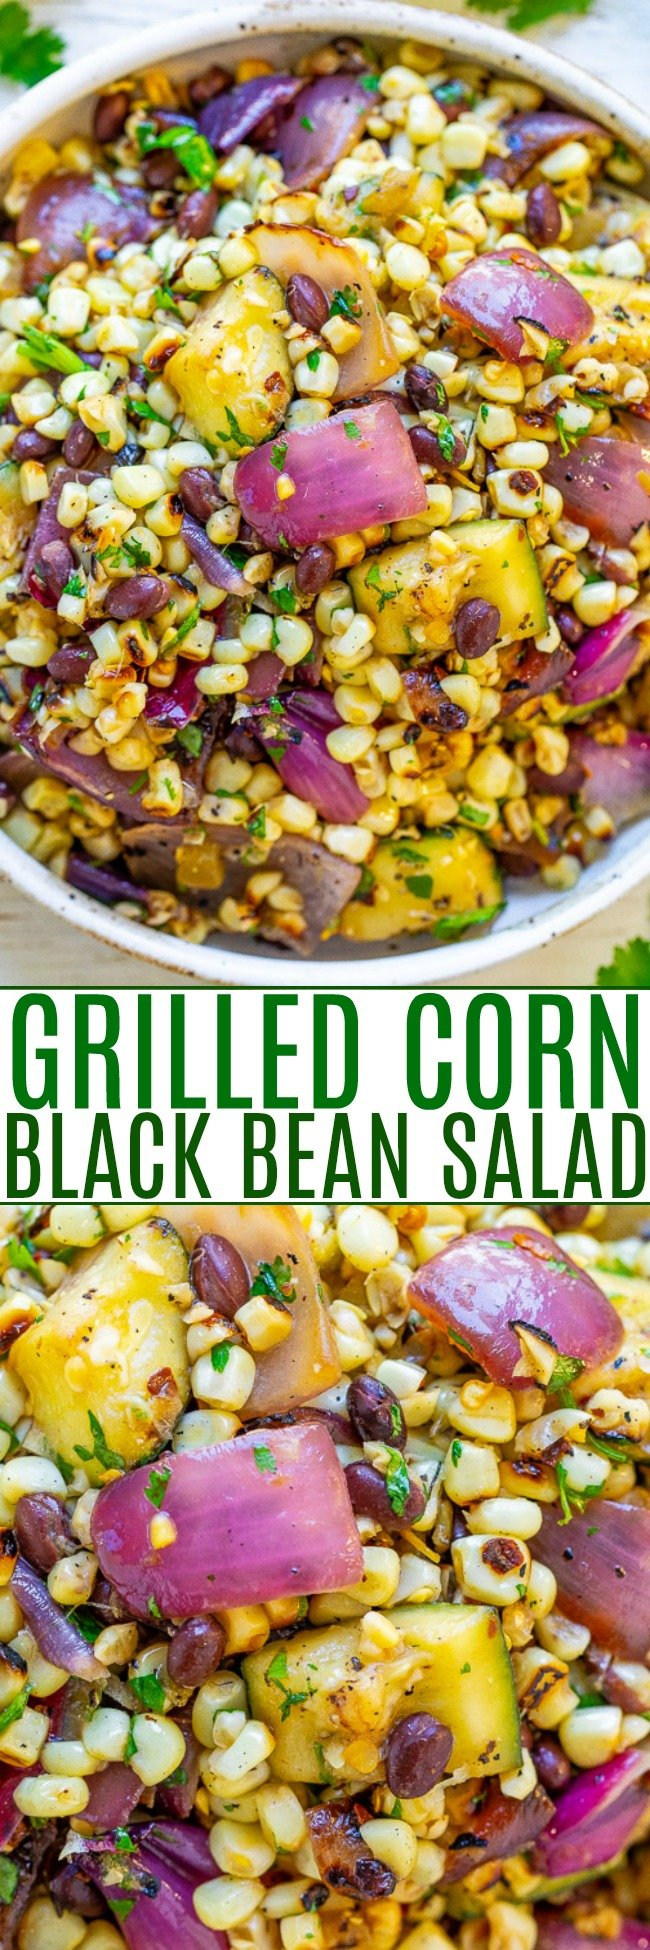 Grilled Corn and Black Bean Salad - An EASY corn salad with black beans, zucchini, red onions, cilantro, lime juice, and more!! So much Mexican-inspired FLAVOR in every bite of this family favorite recipe that's sure to be a hit!!